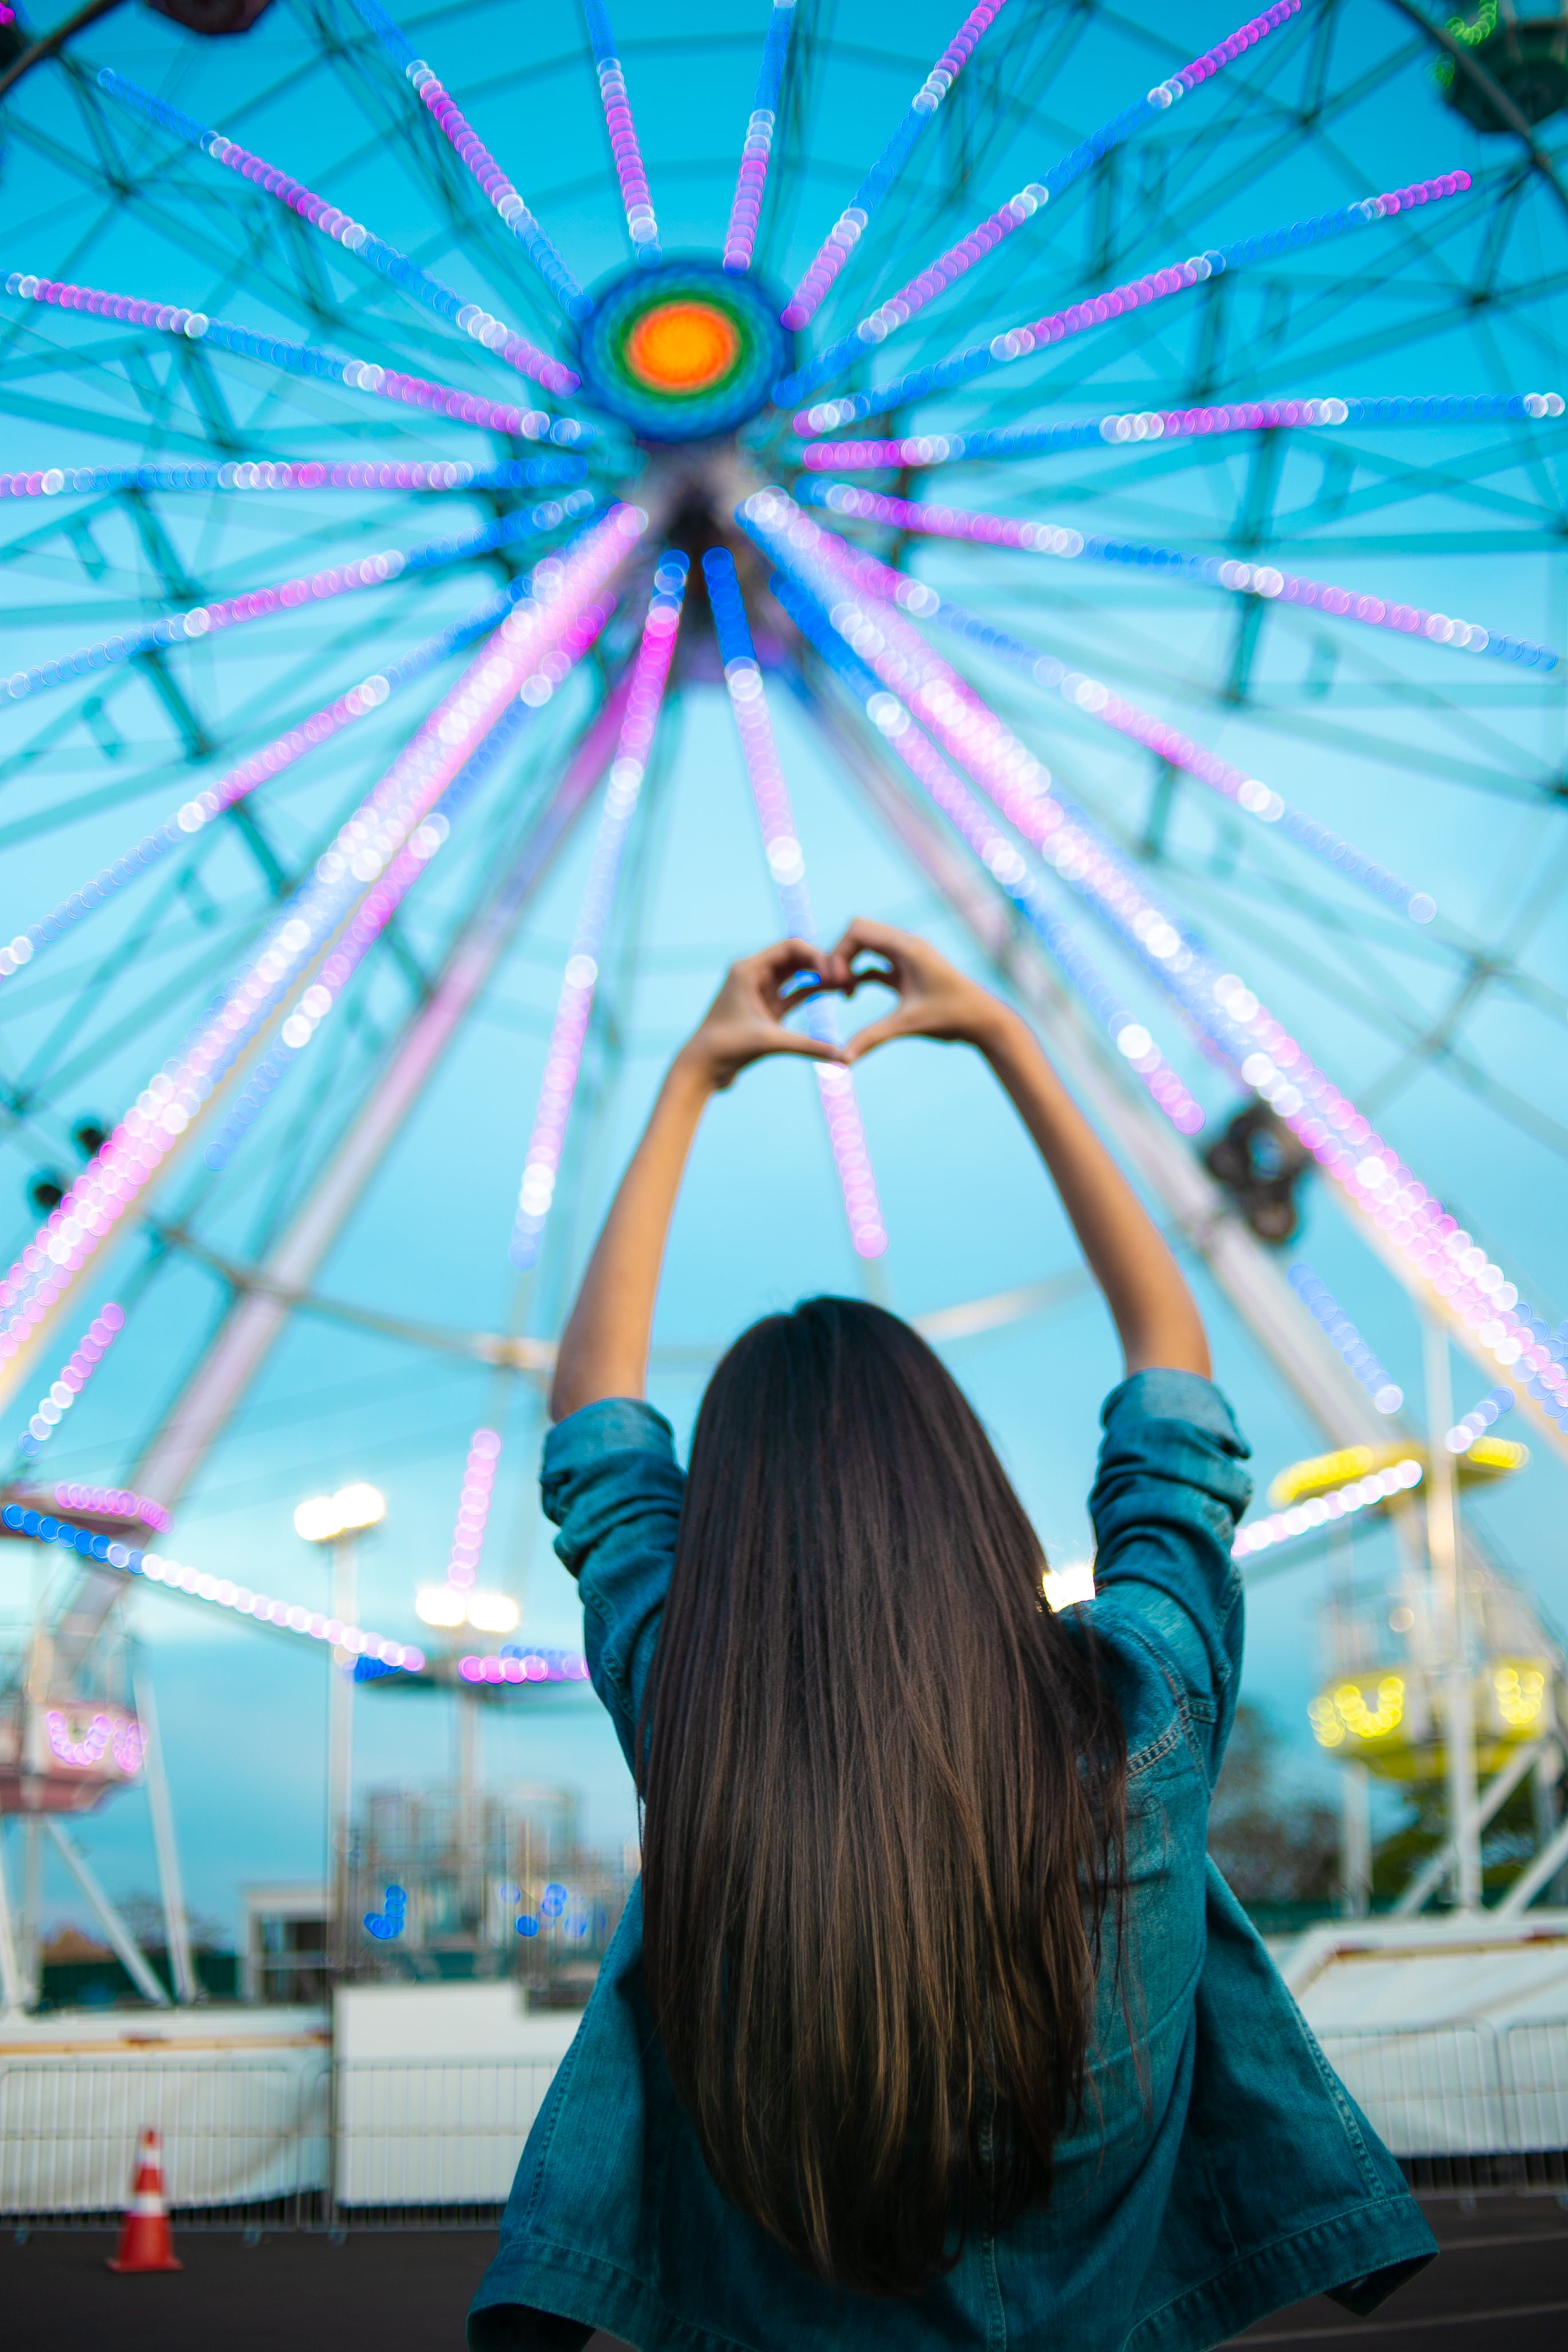 Woman Facing Ferris Wheel While Making Heart Hand Sign